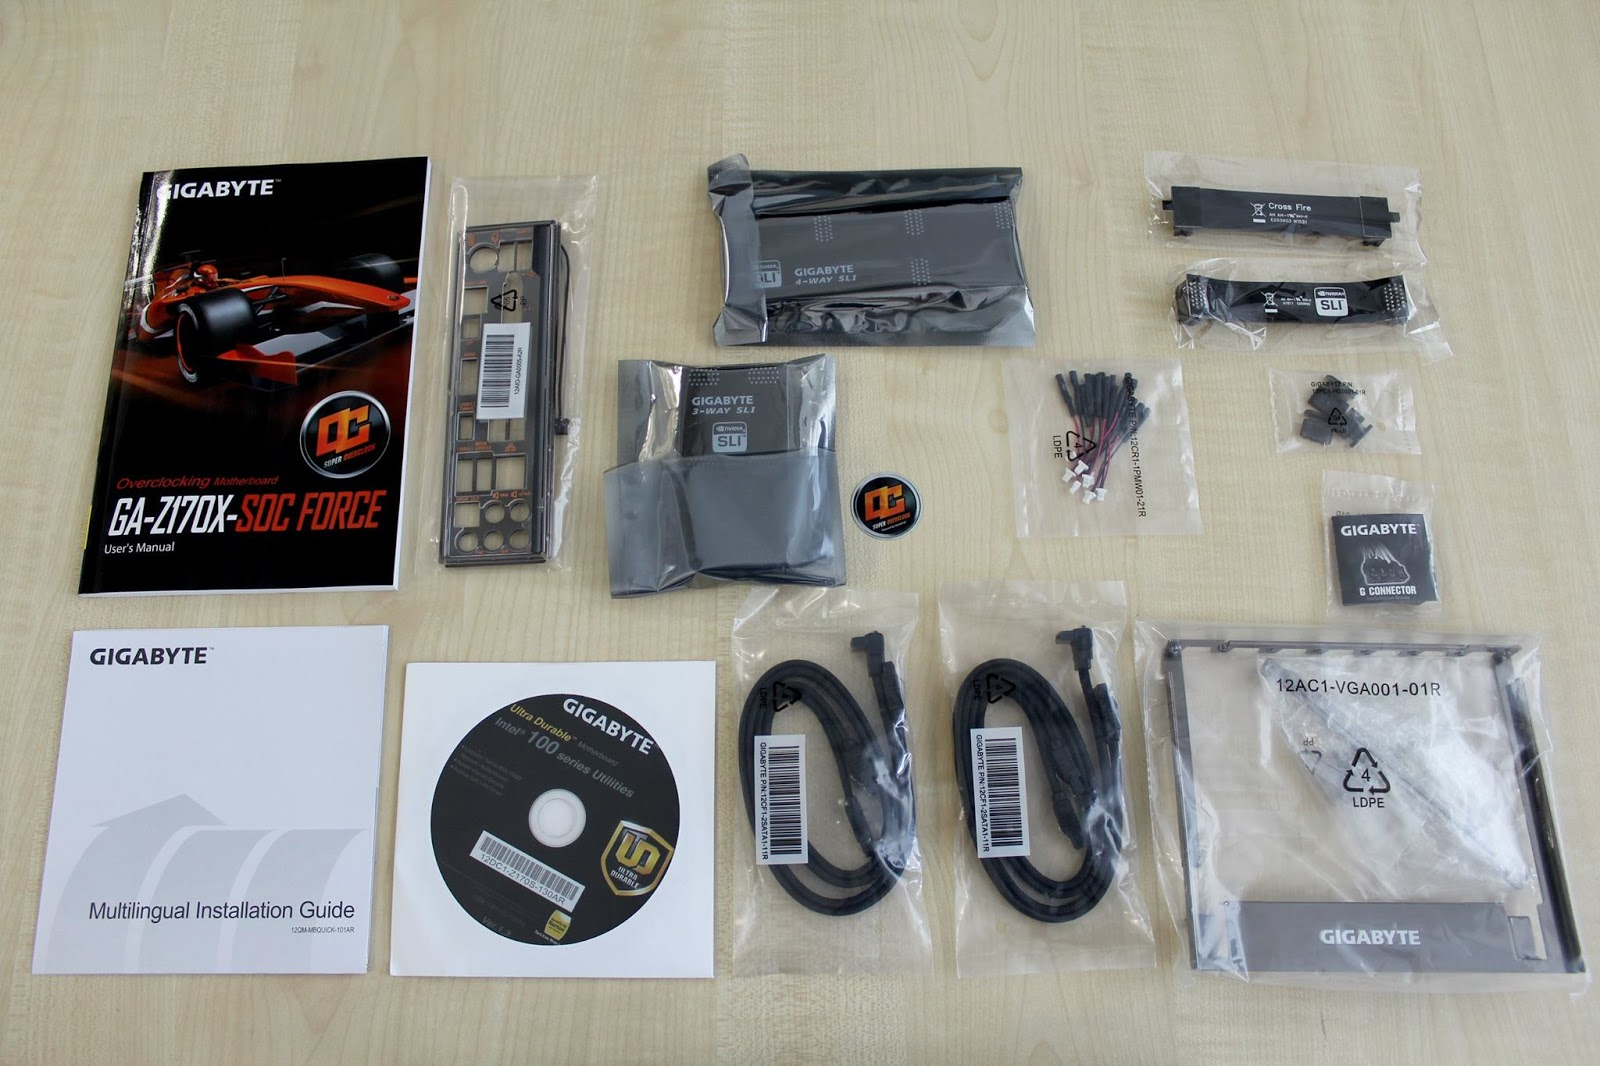 Gigabyte Ga Z170x Soc Force Lga 1151 Motherboard Review And Gaming G1 Socket Open The Box You Are Greeted By A Plethora Of Accessories Packed In Same Fashion As Im Fan Loaded Boards